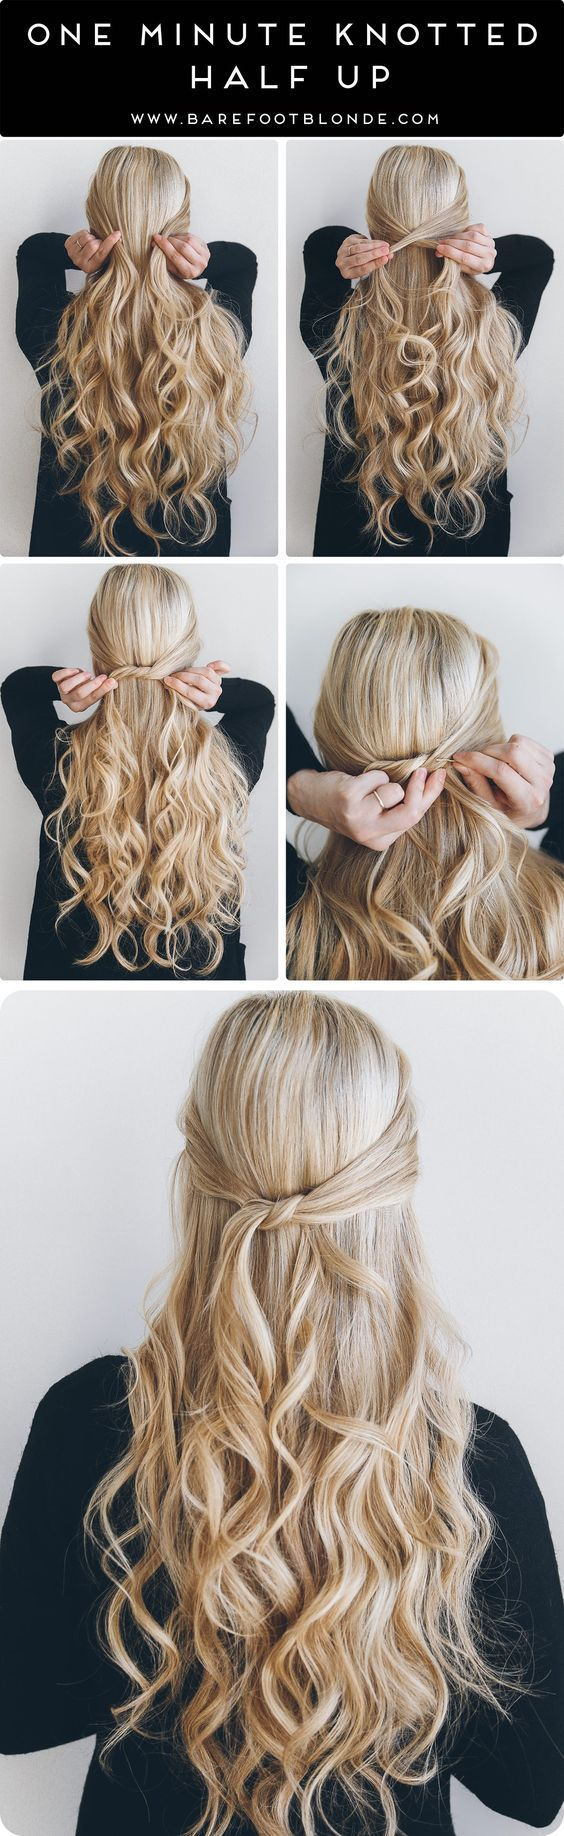 Easy Cute Hairstyles Cool 15 Easy Hair Tutorials For Curly Hair  Medium Hairstyle Makeup And